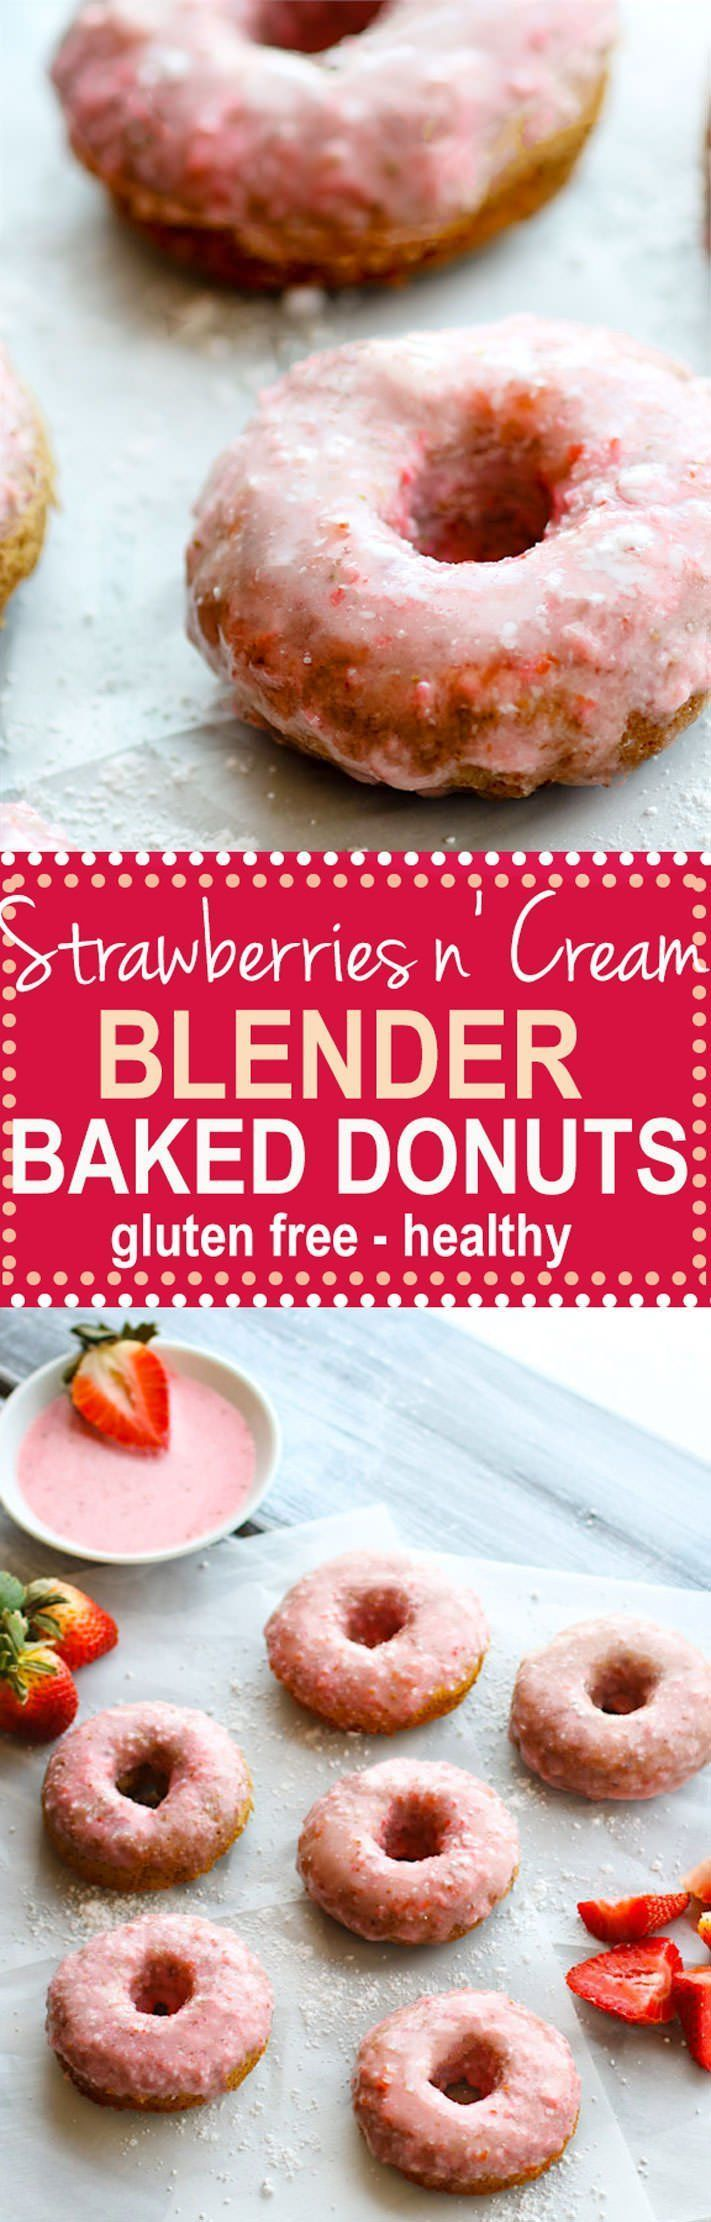 Healthy Gluten Free Strawberries n' Cream BLENDER Baked Donuts. Healthy Donuts do exist! These gluten free and protein packed baked donuts are super easy to make and great for kids, a sweet breakfast, or even just to snack on. Can you believe one of these